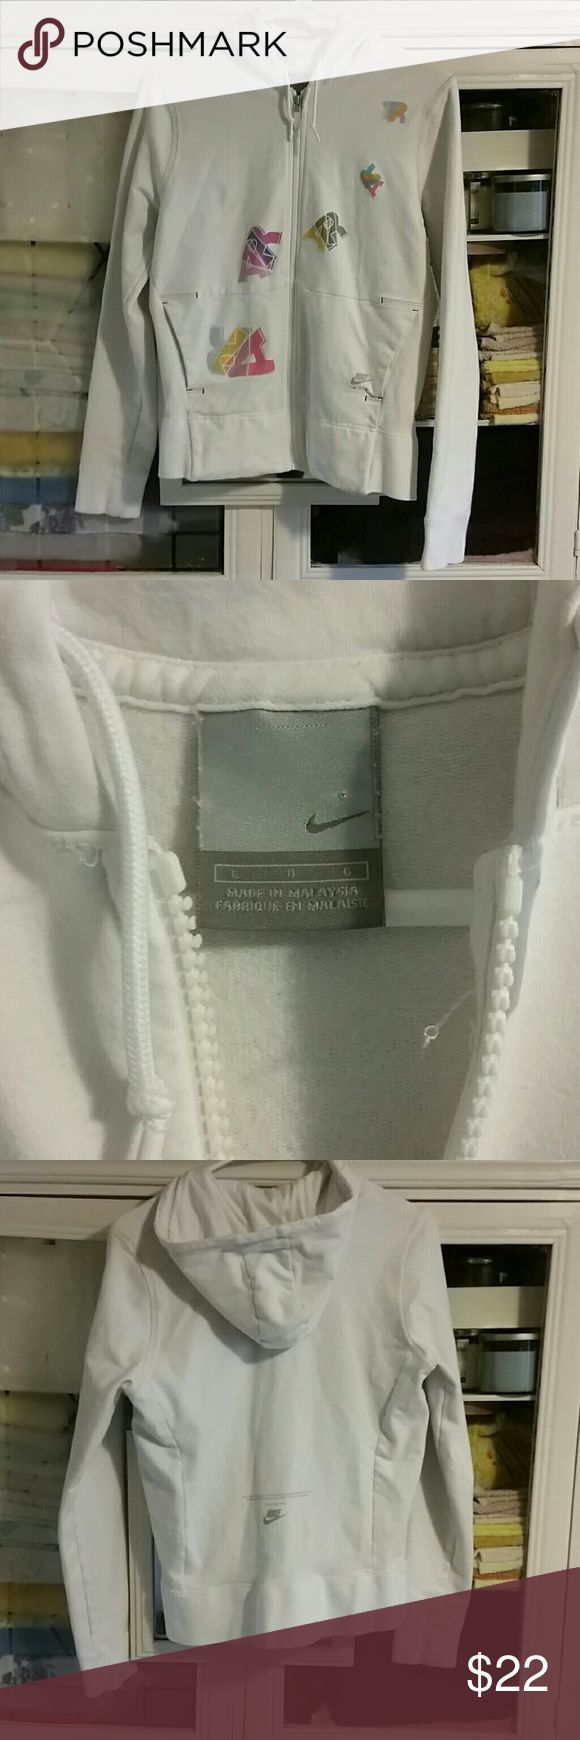 White nike zip up hoodie size large White nike zip up hoodie size large Nike Jackets & Coats